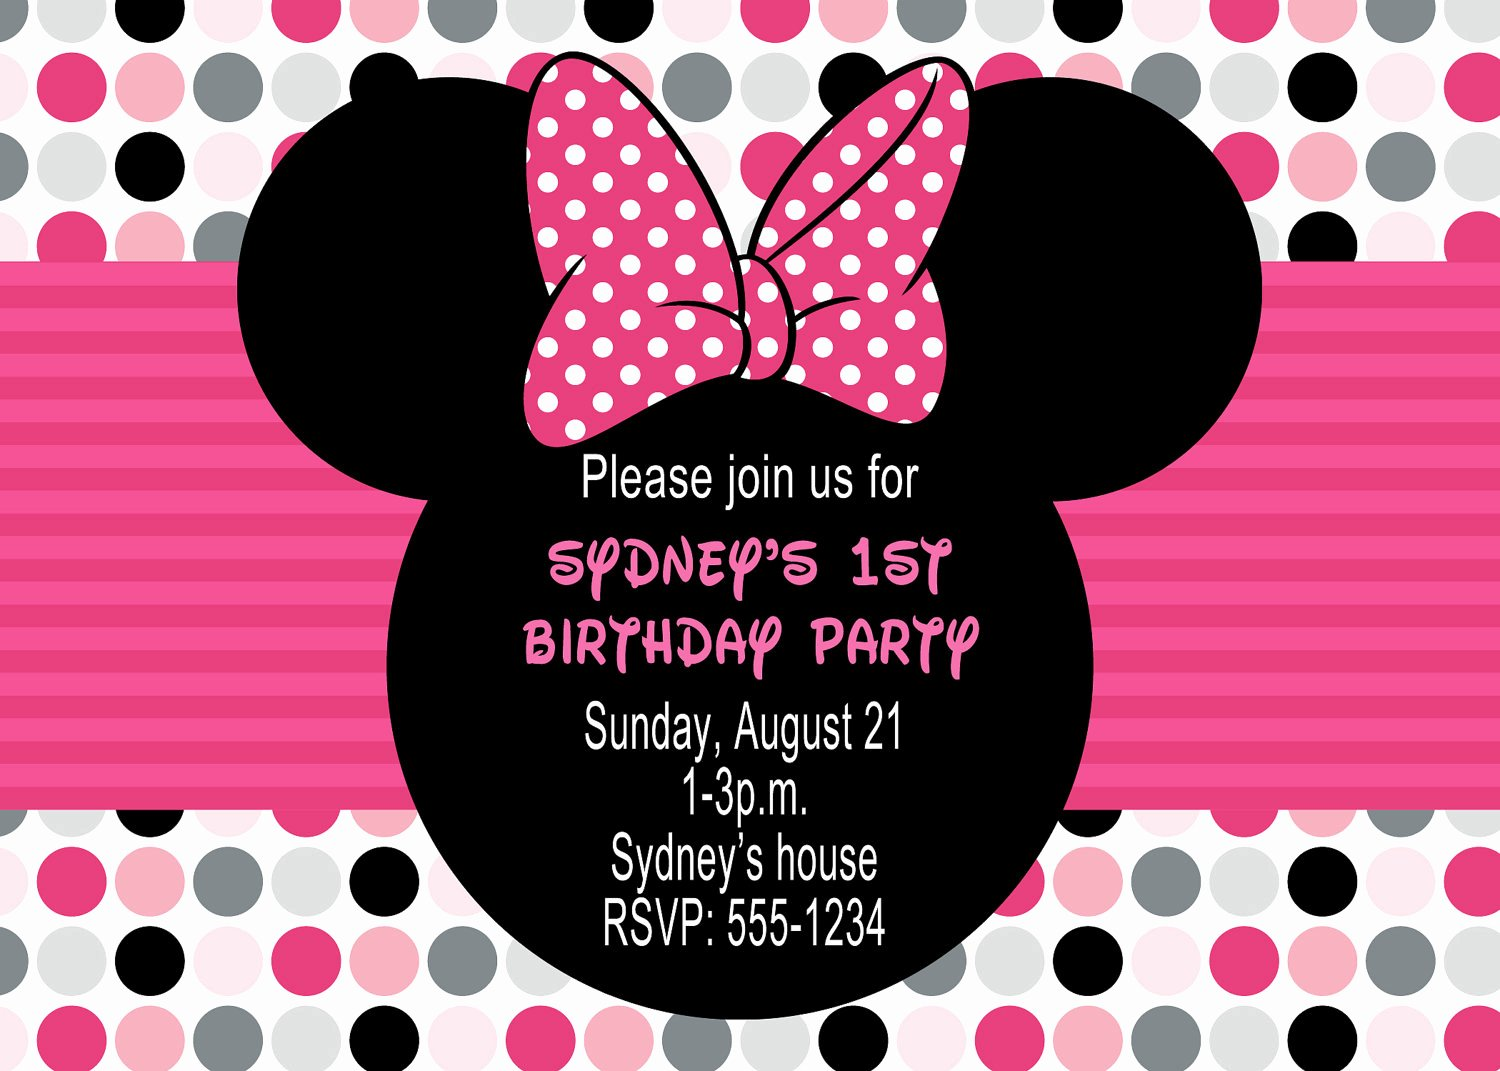 Minnie Mouse Invitation Wording Awesome Minnie Mouse Birthday Party Invitations